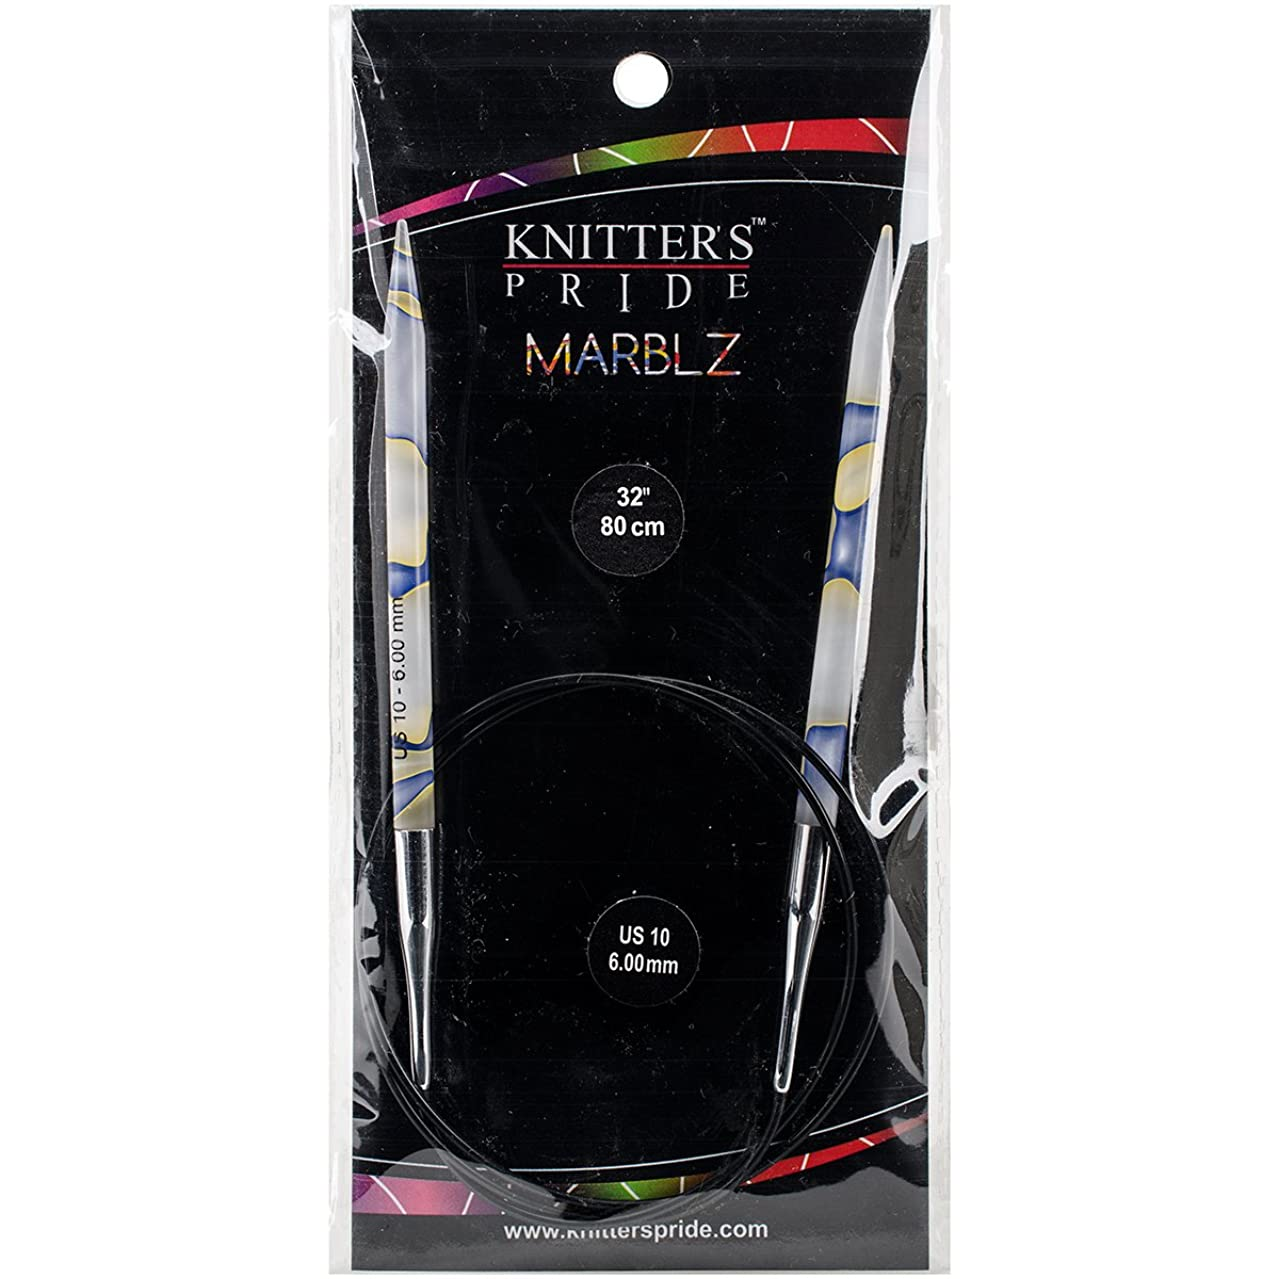 Knitter's Pride 10/6mm Marblz Fixed Circular Needles, 32